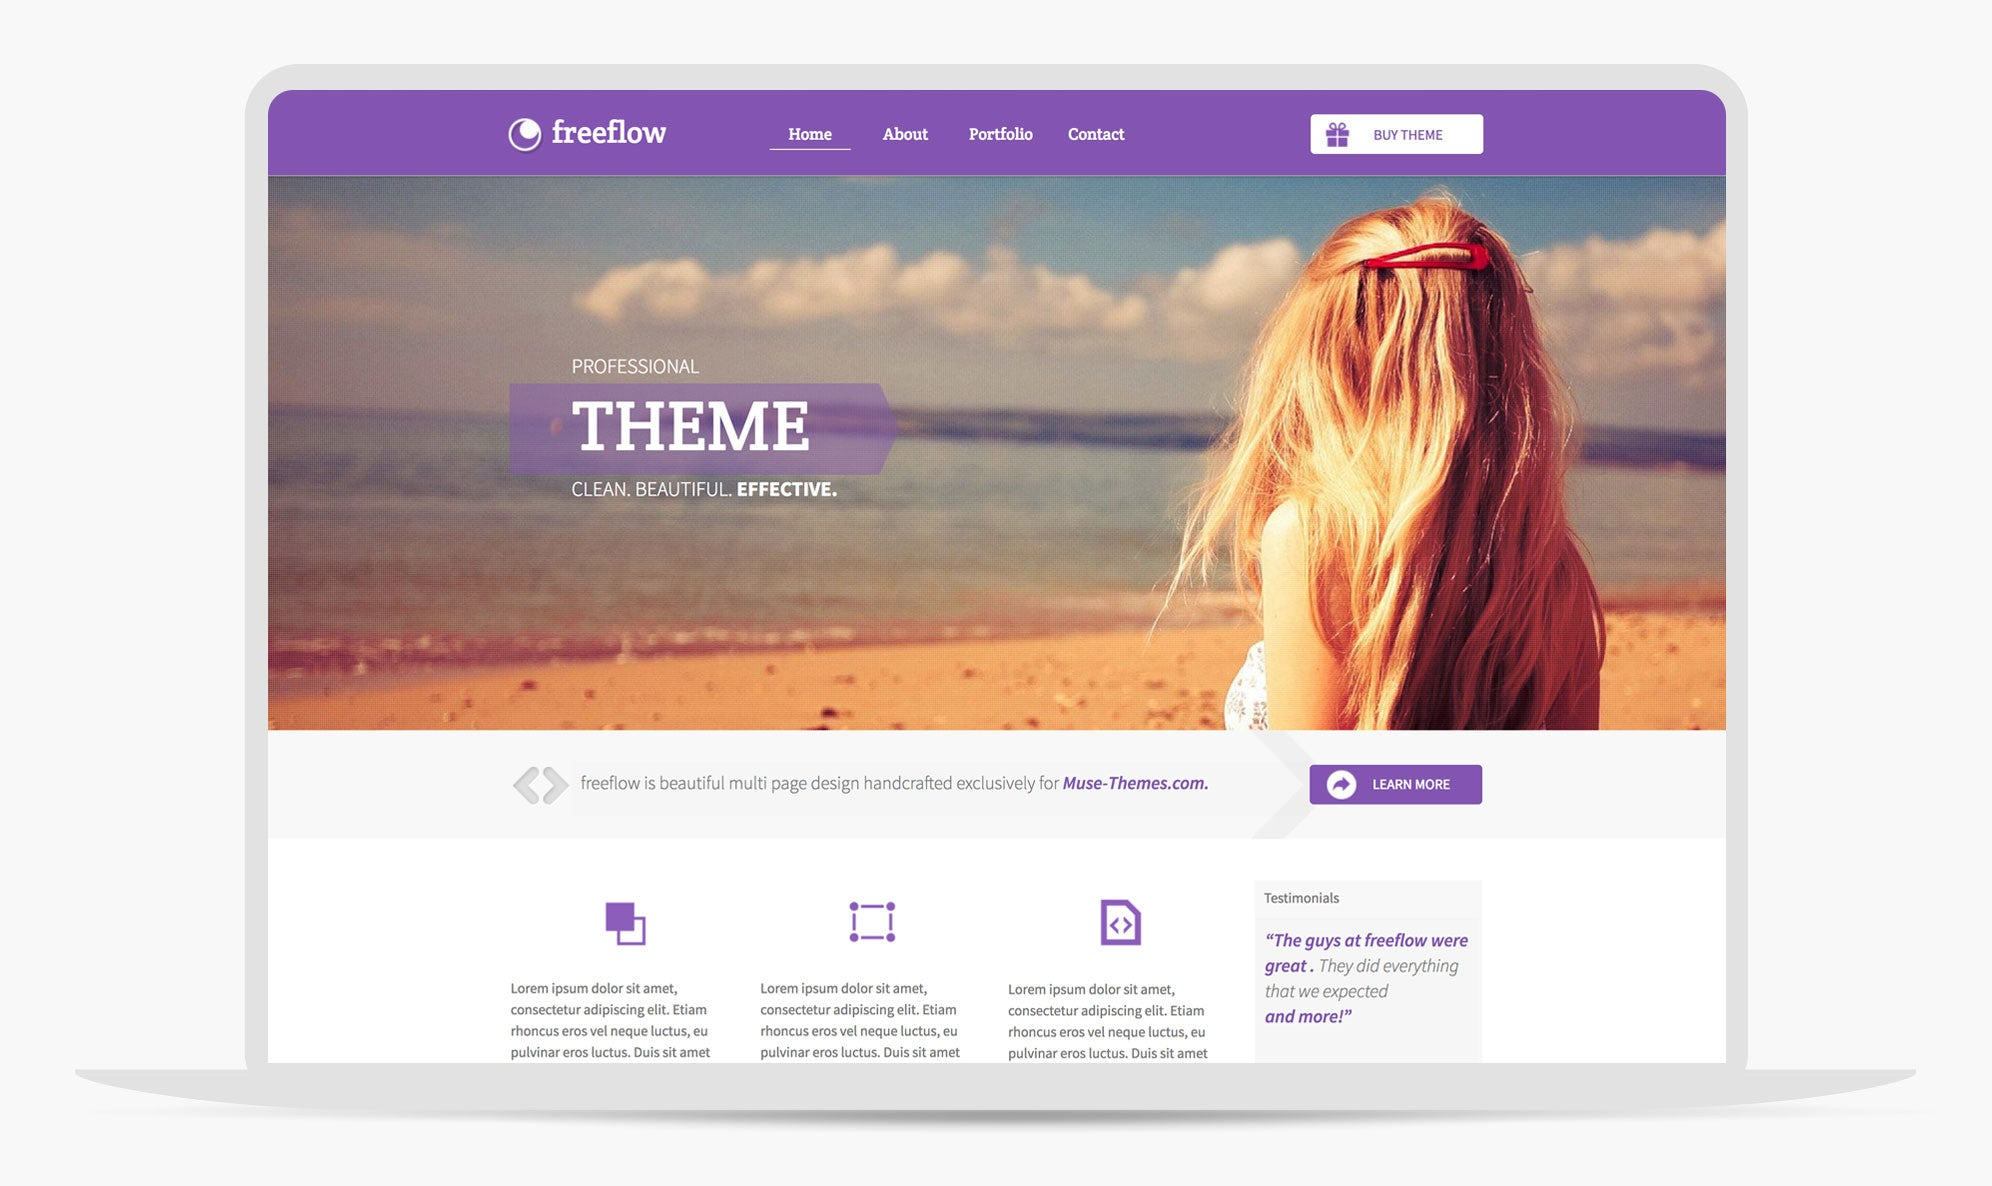 Adobe Muse Theme Freeflow By Musethemes